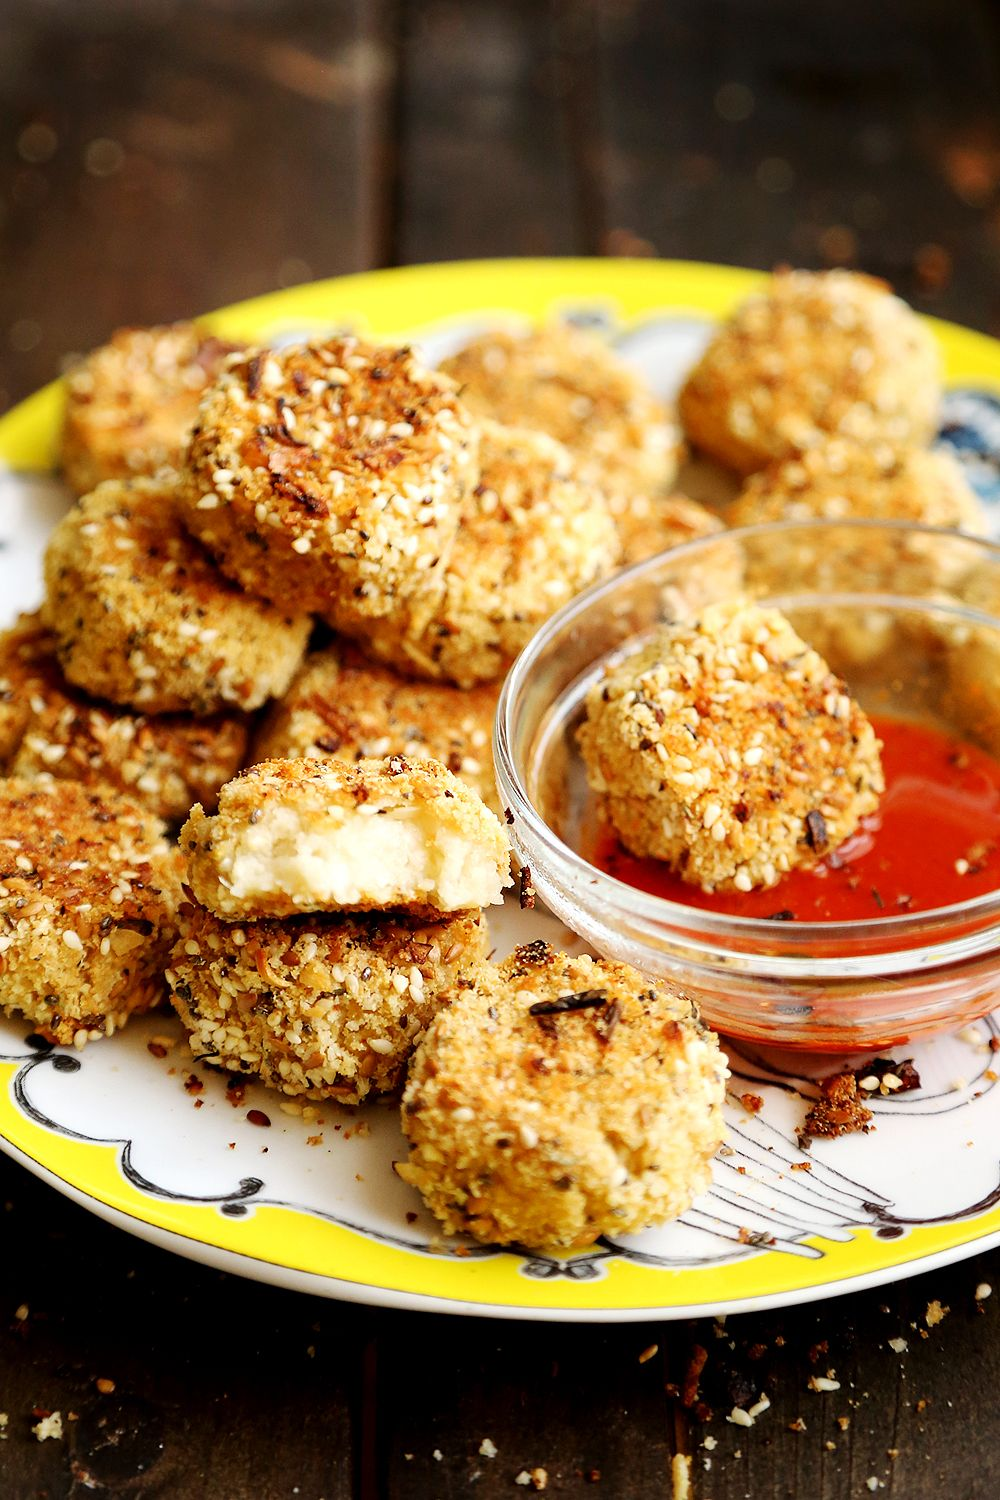 I Have Made Cauliflower Nuggets In The Past But I Wanted To Bread